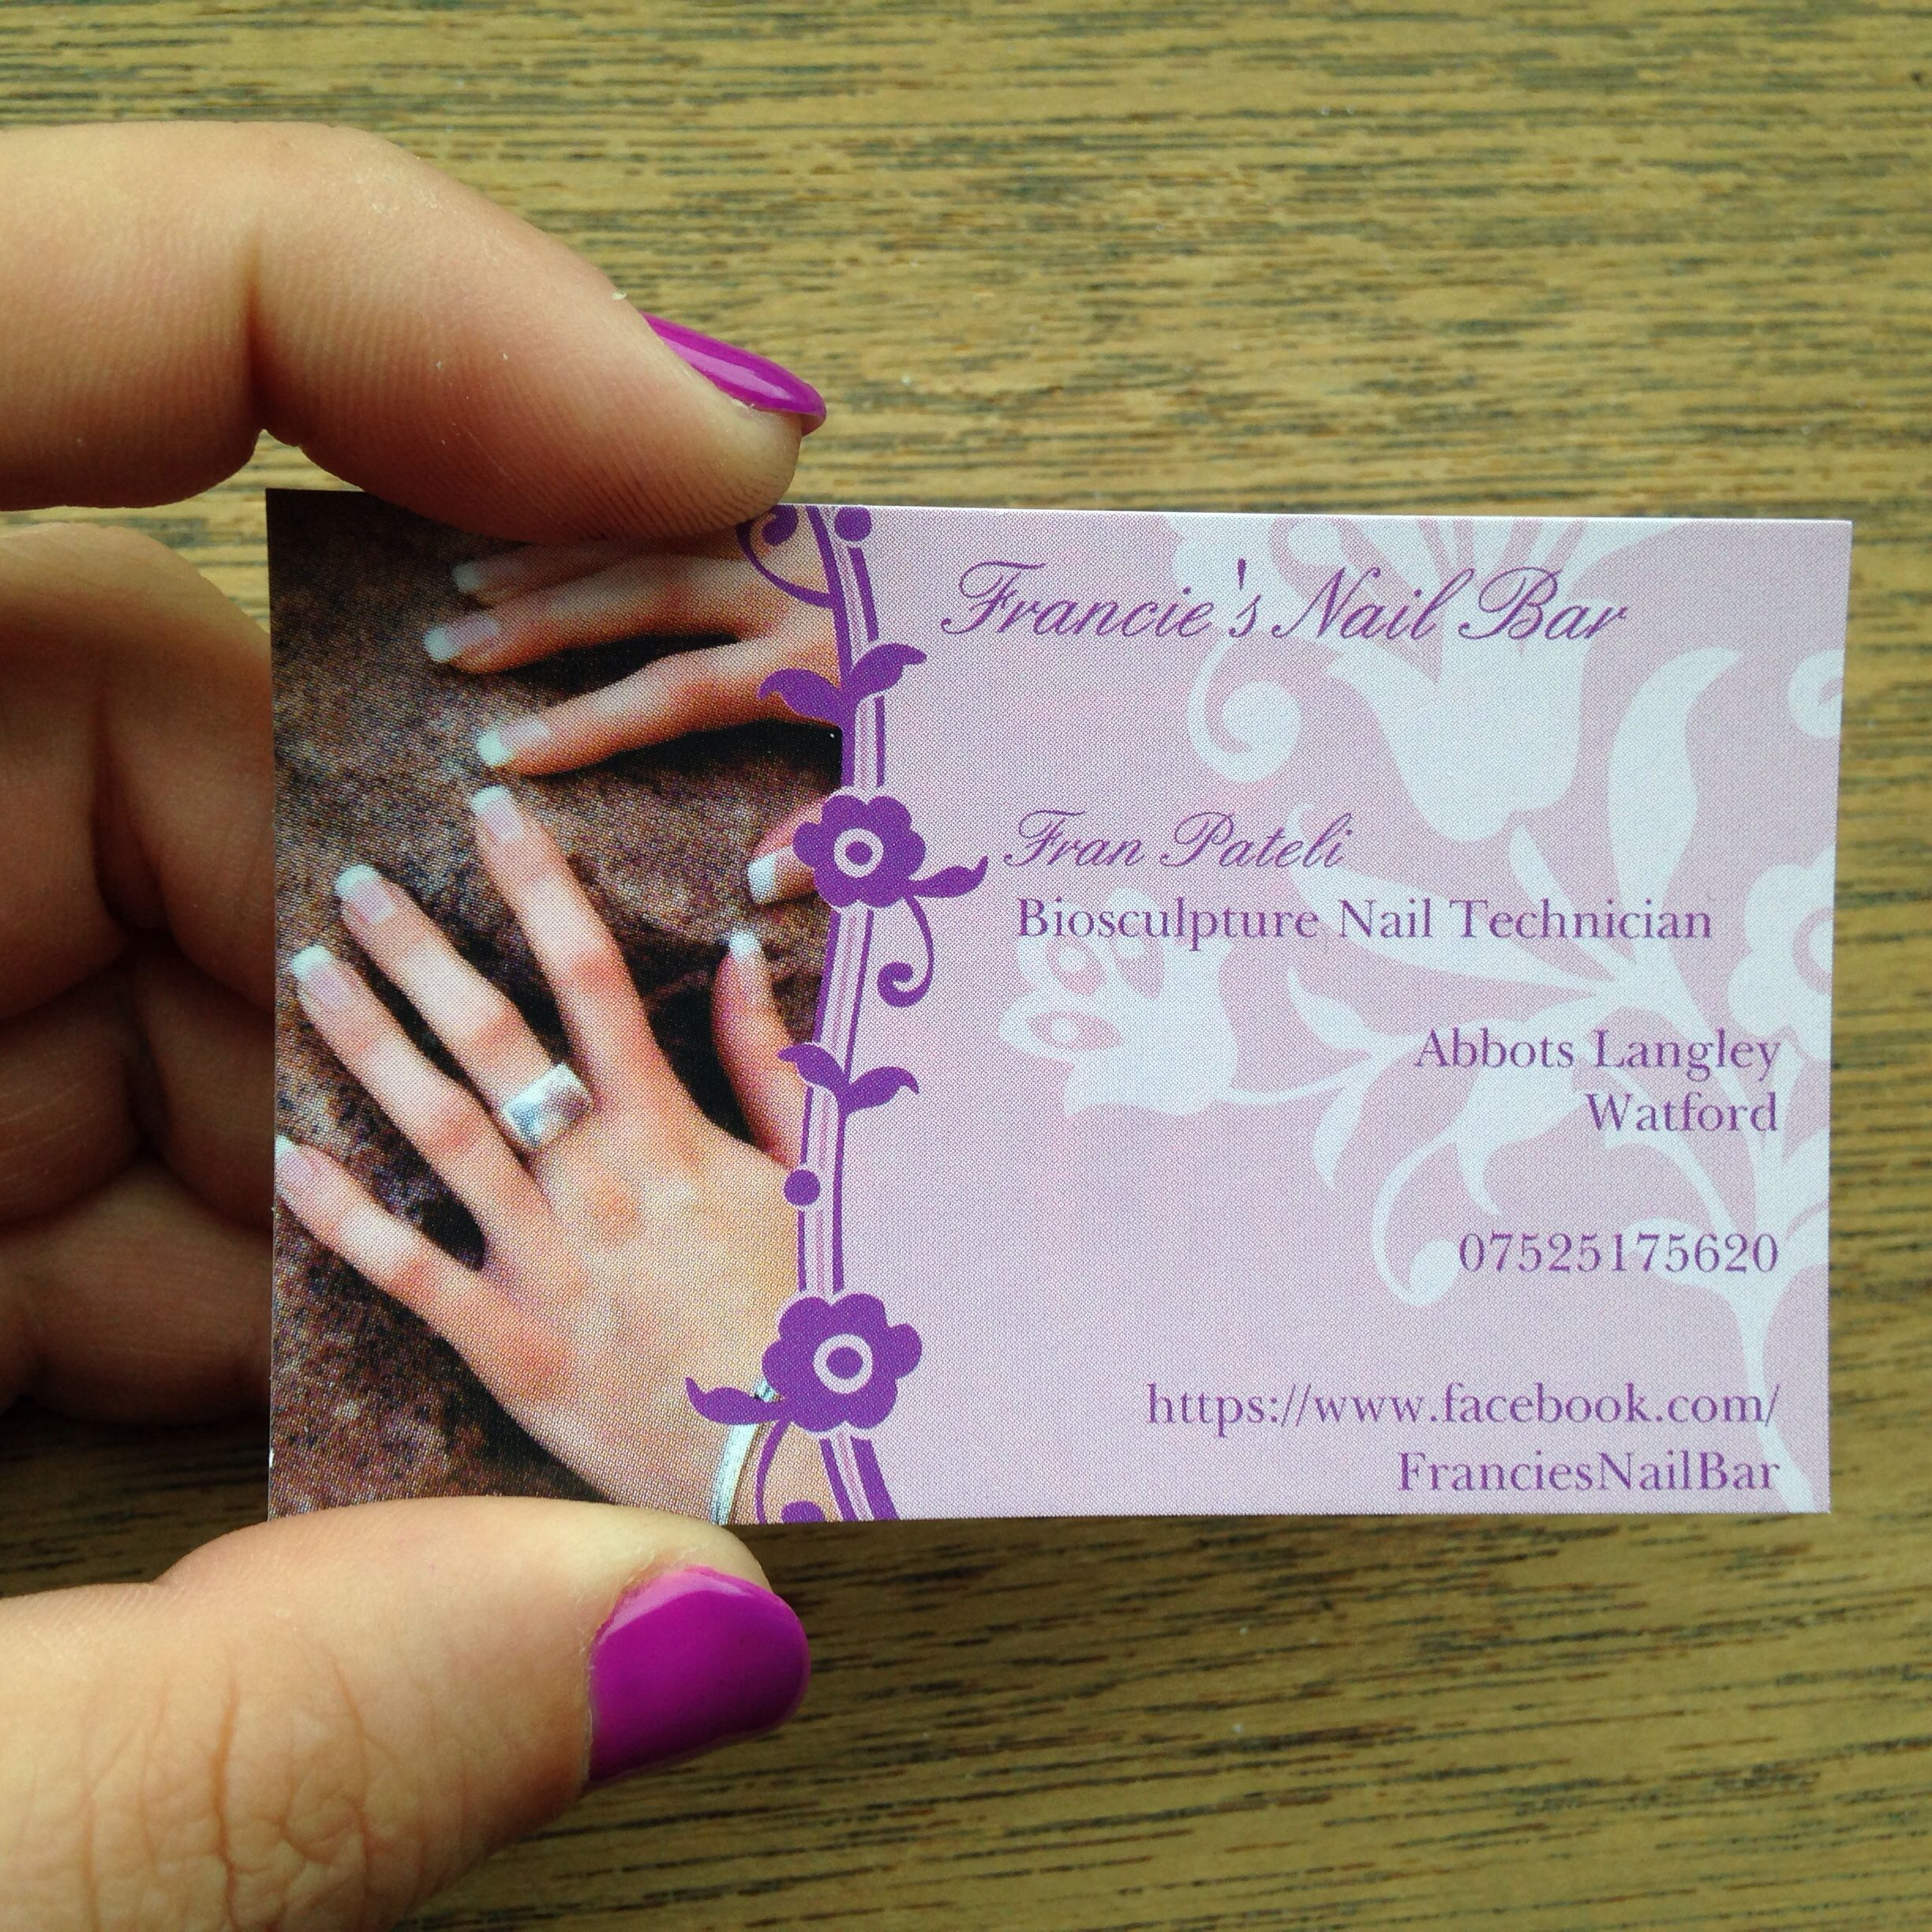 my business card nails business biosculpture gels qualified